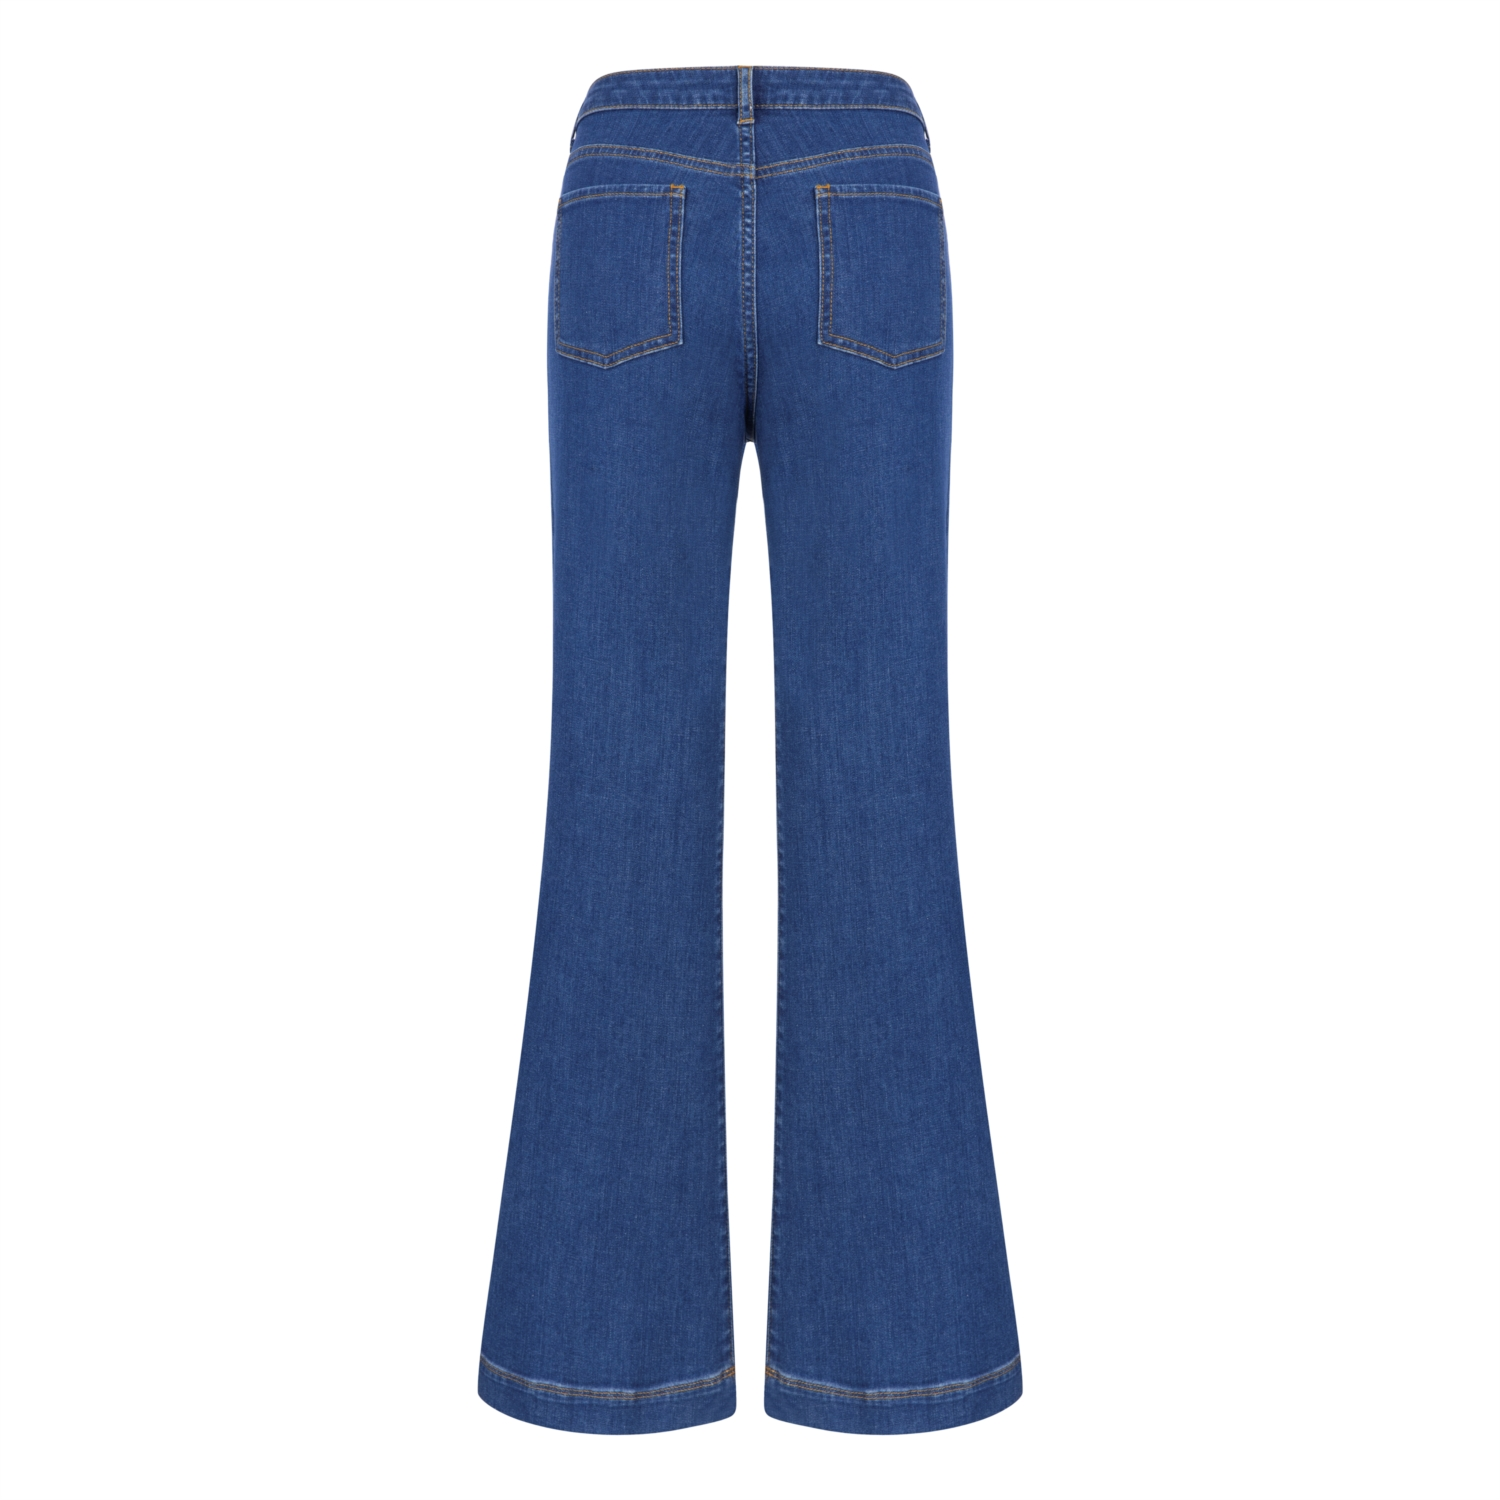 FLARE DENIM PANTOLON